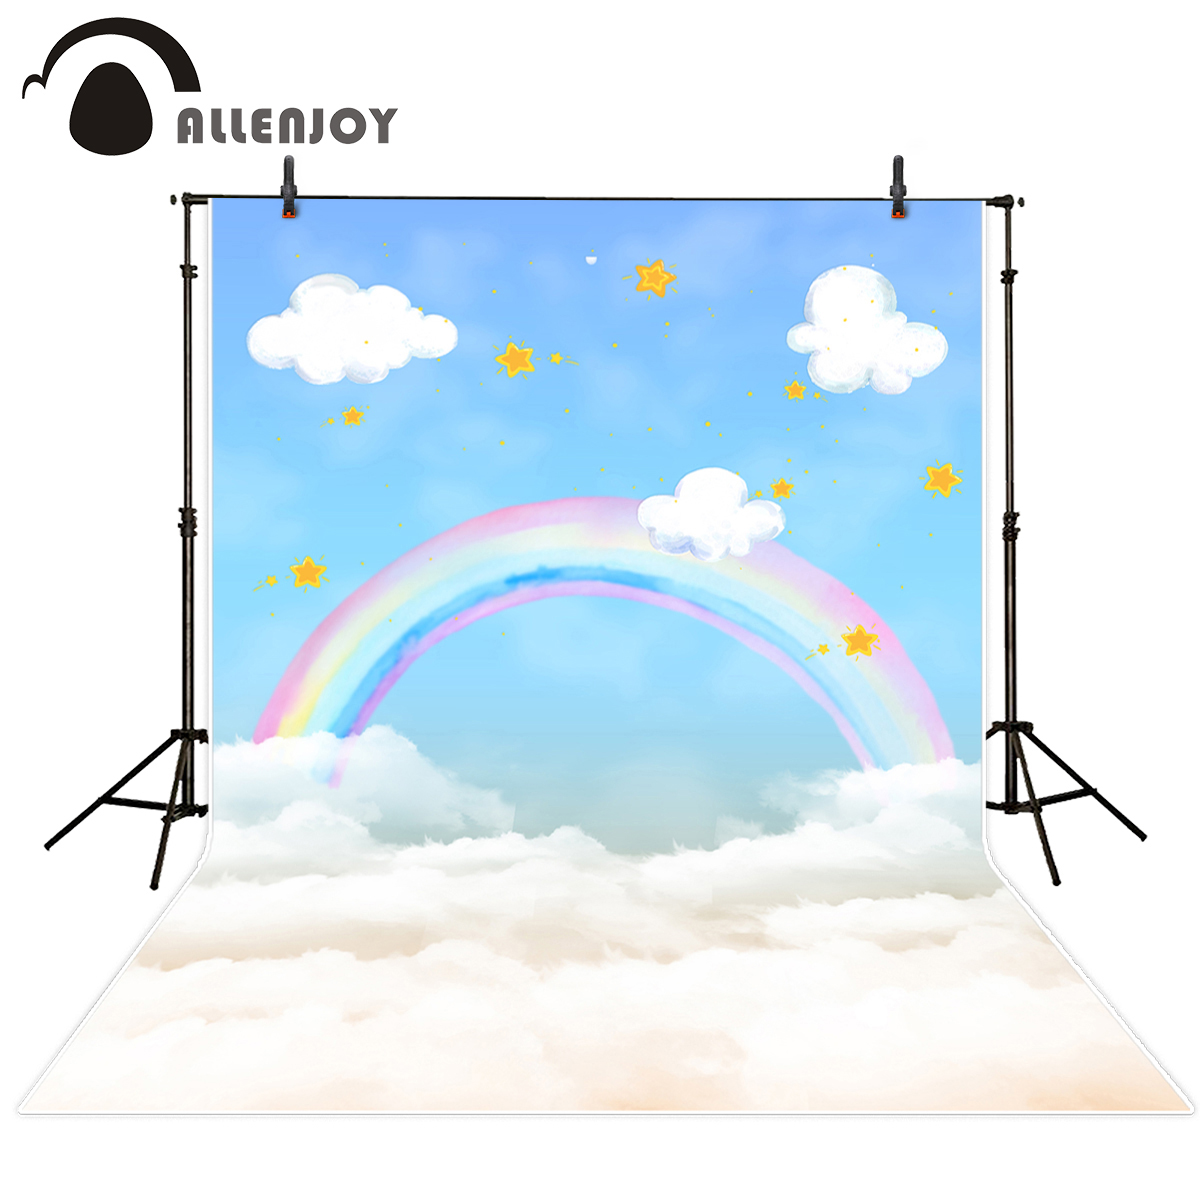 Allenjoy photography backdrops rainbow Clouds stars lovely backgrounds for children baby newborn photo backdrop Backgrounds allenjoy photography background lovely clouds cotton hearts stars rainbow backdrop photo studio camera fotografica